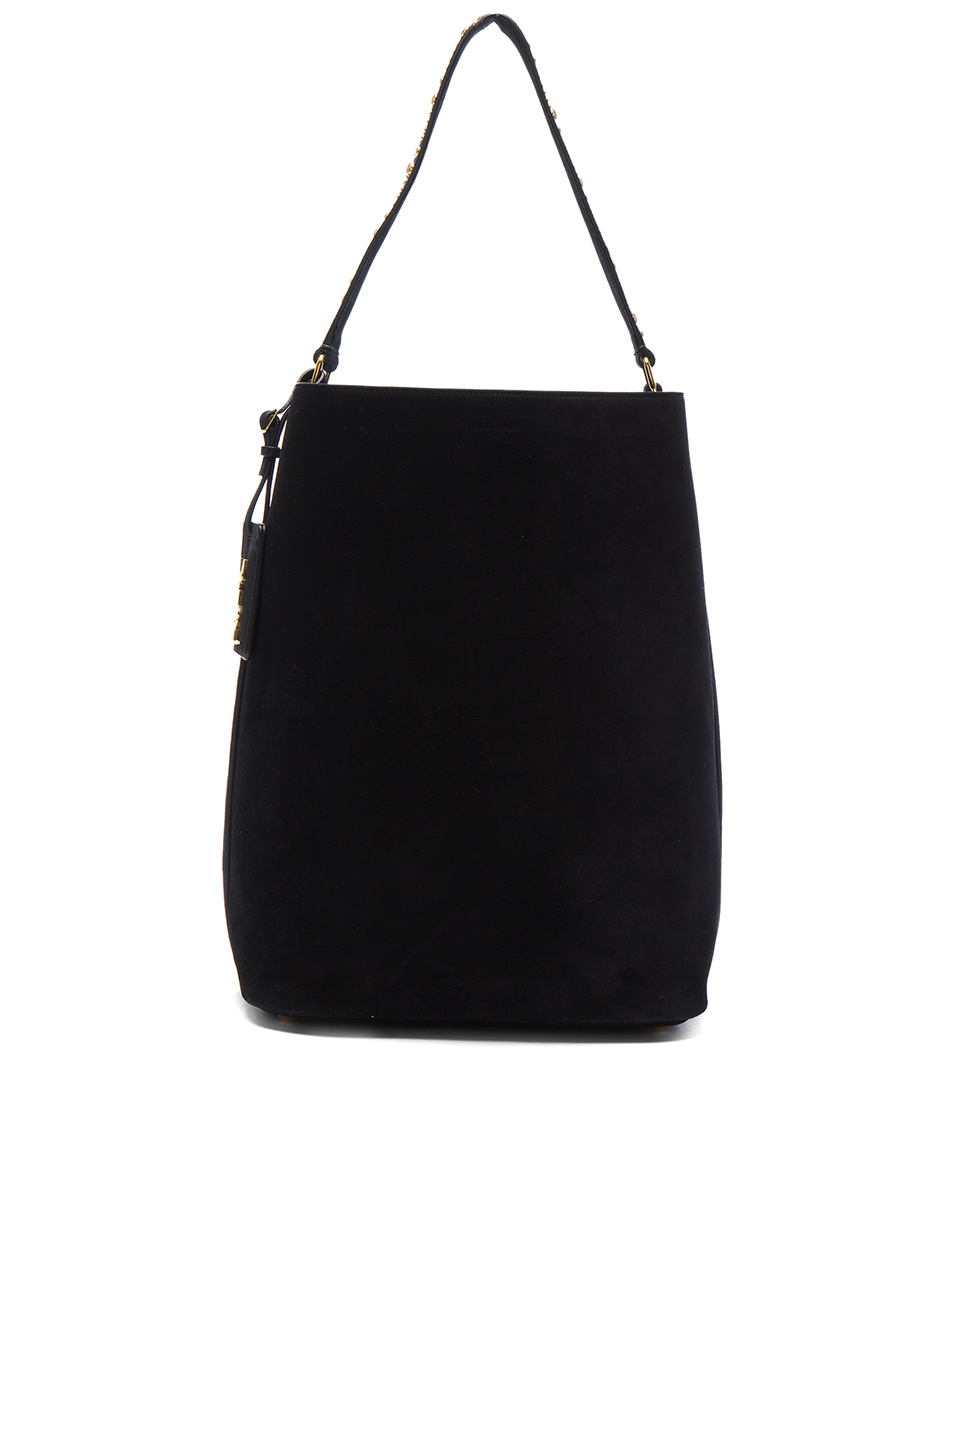 Saint Laurent Hobo Large Bag in Black